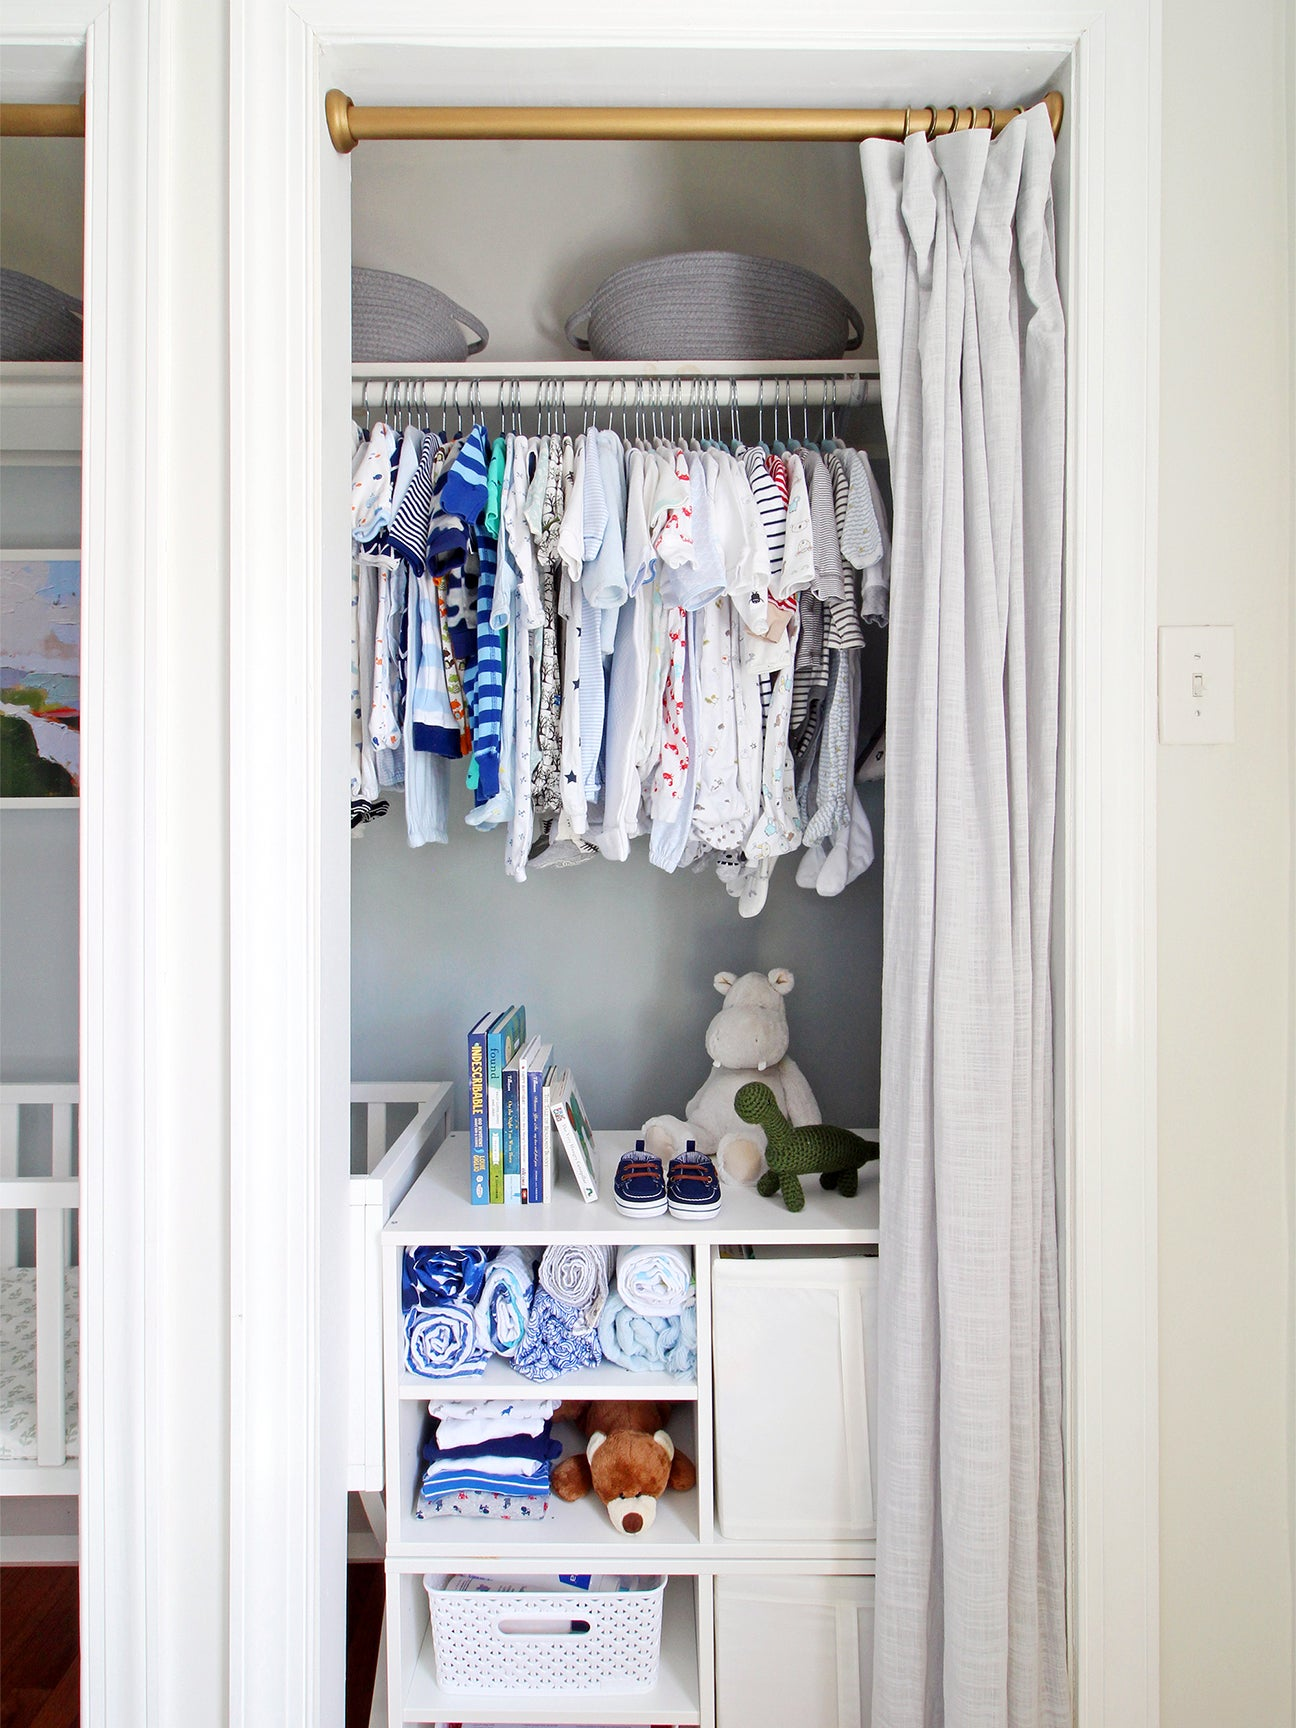 small closet with baby clothes and a curtian drawn back